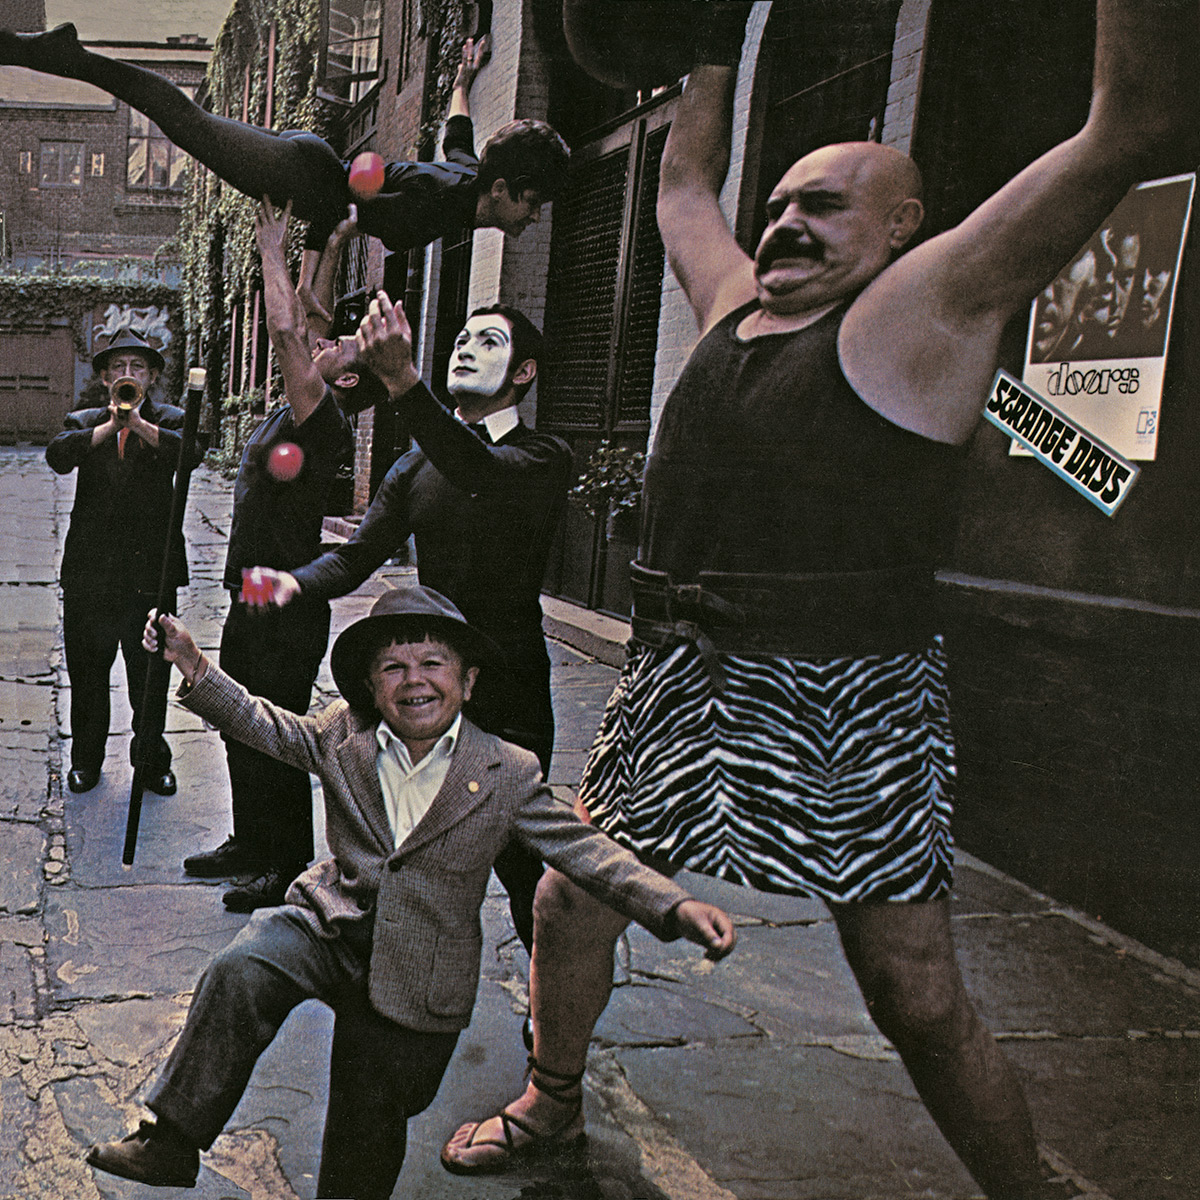 The Doors - Strange Days - 1967